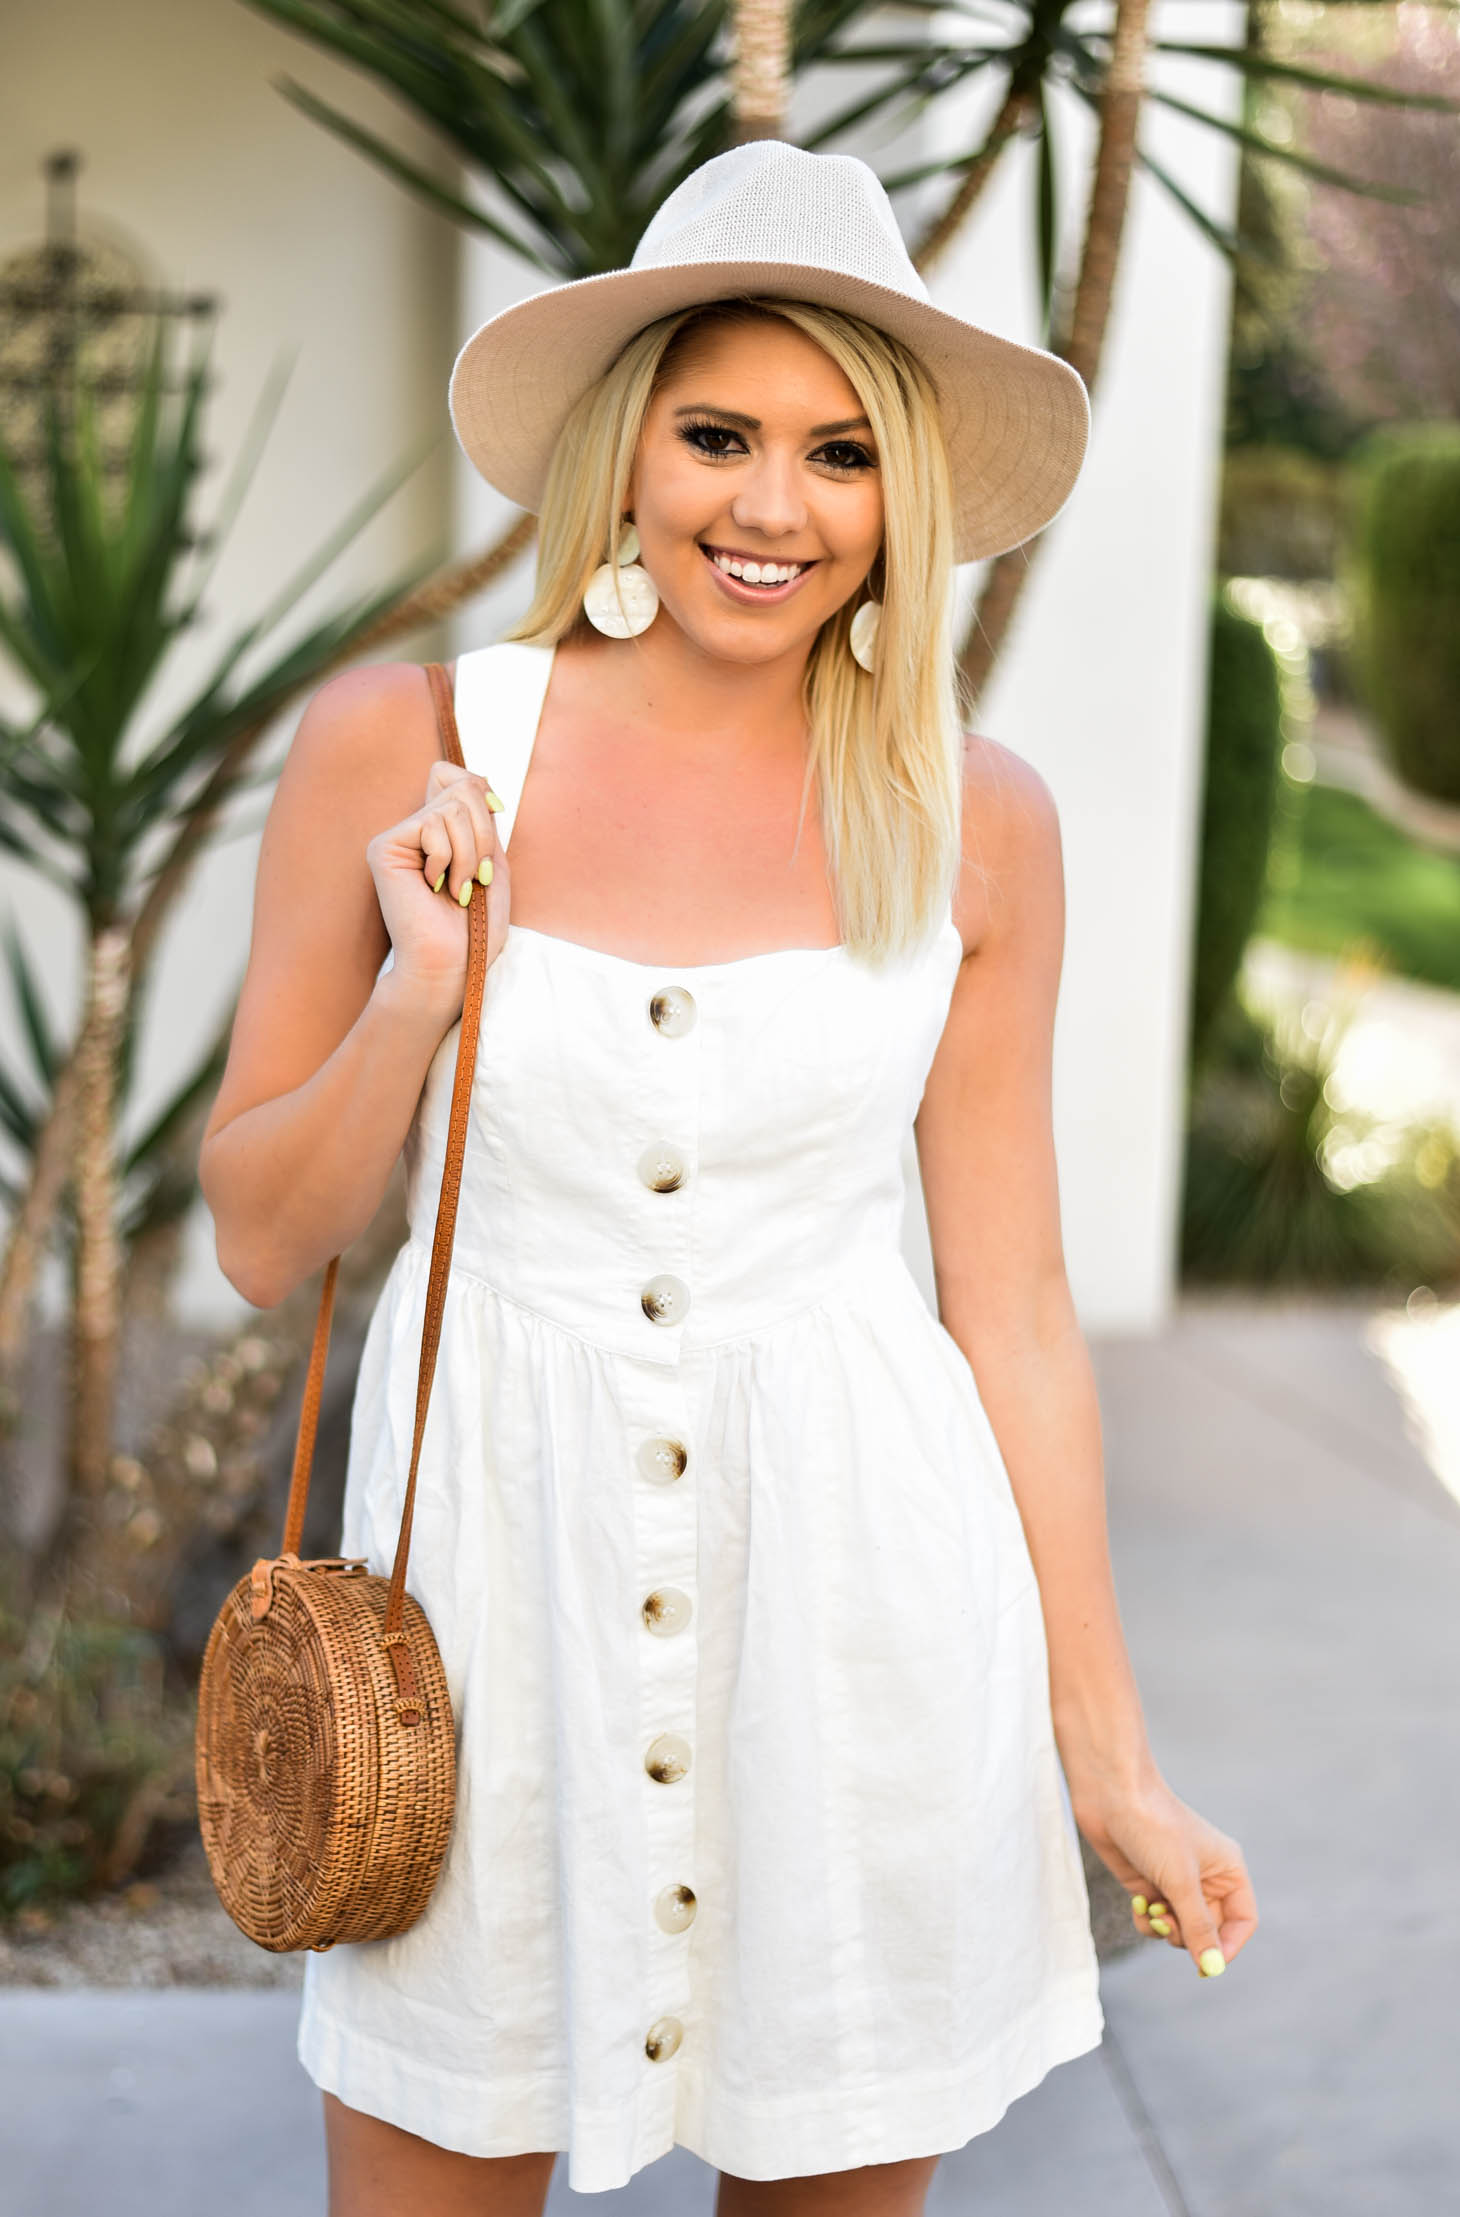 Erin Elizabeth of Wink and a Twirl in Free People White Spring Dress